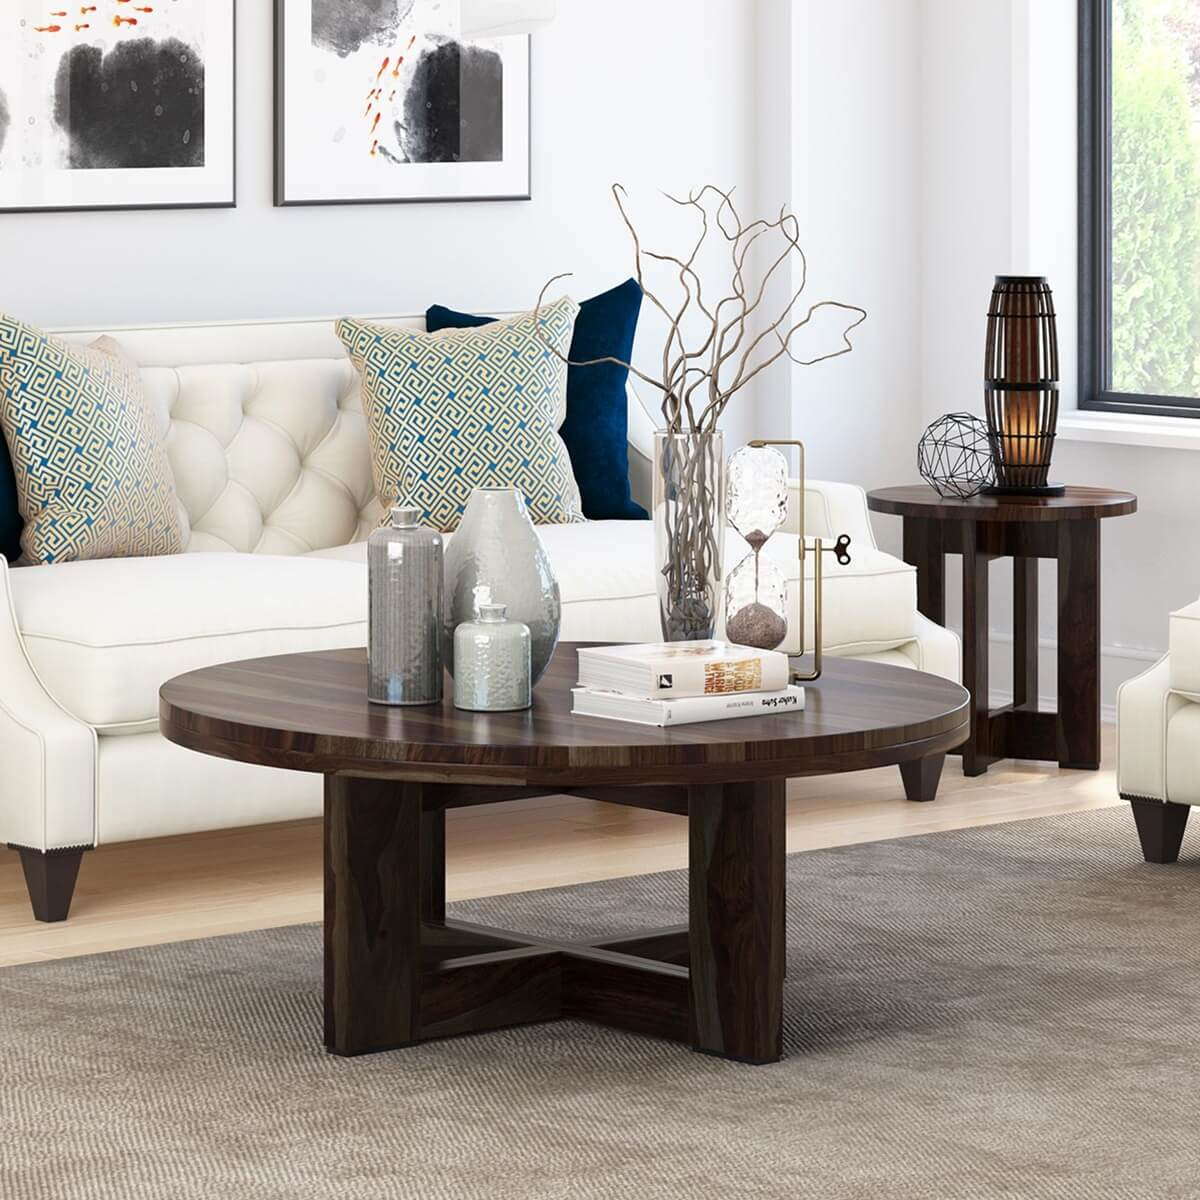 Rustic Round Wooden Coffee Table: Amargosa Contemporary Rustic Solid Wood Round Coffee Table